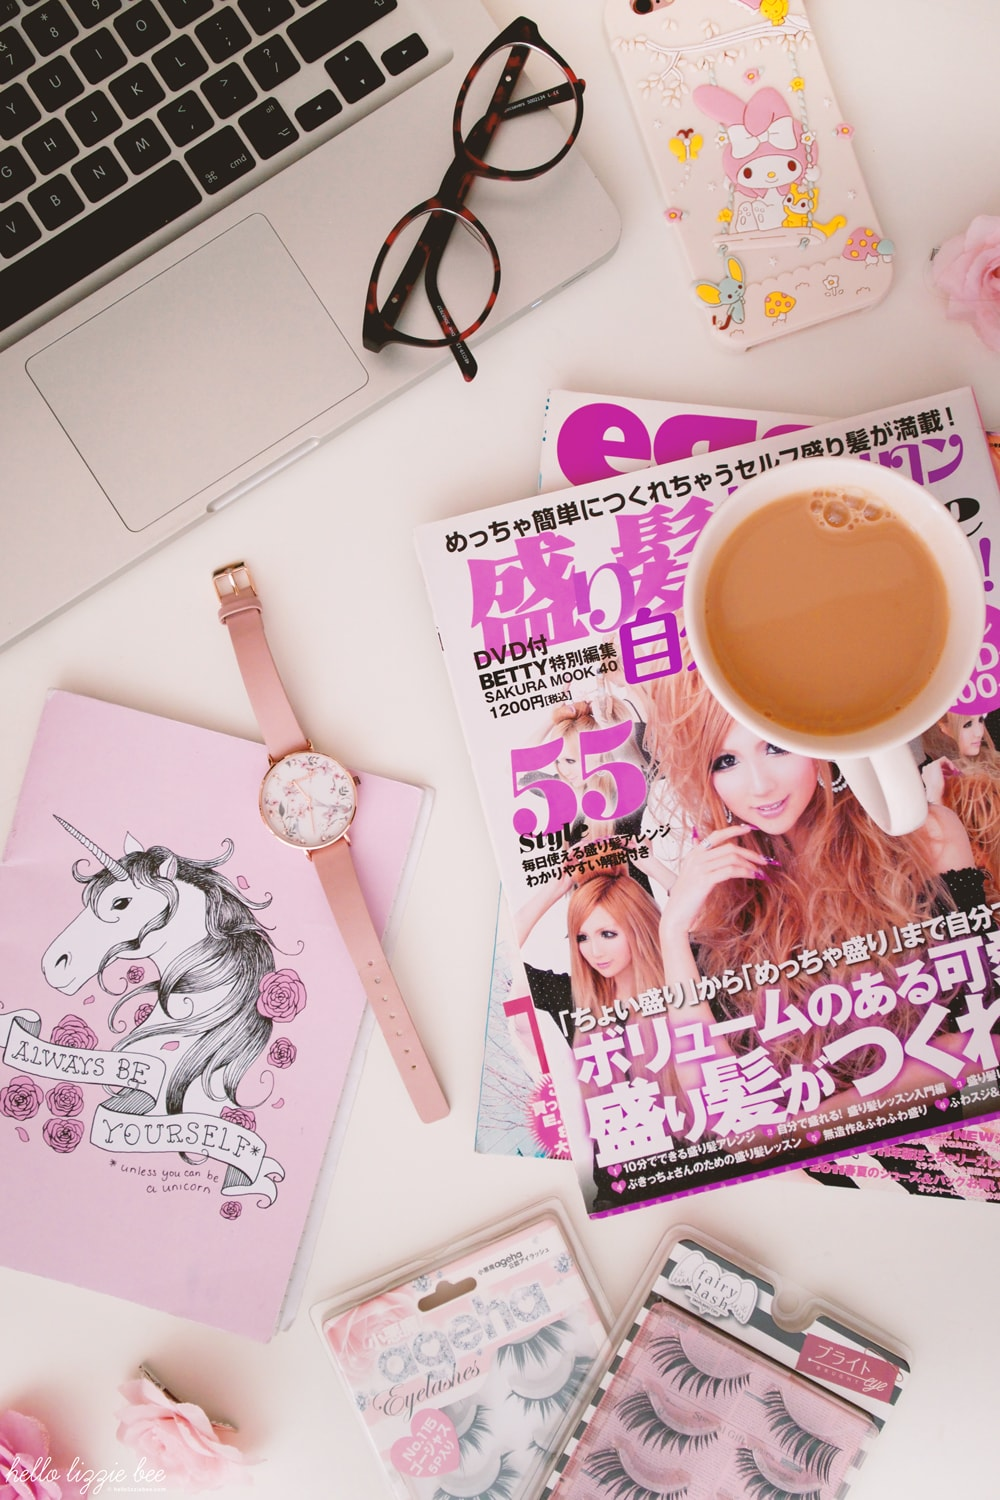 60 Gyaru Blog Post Ideas